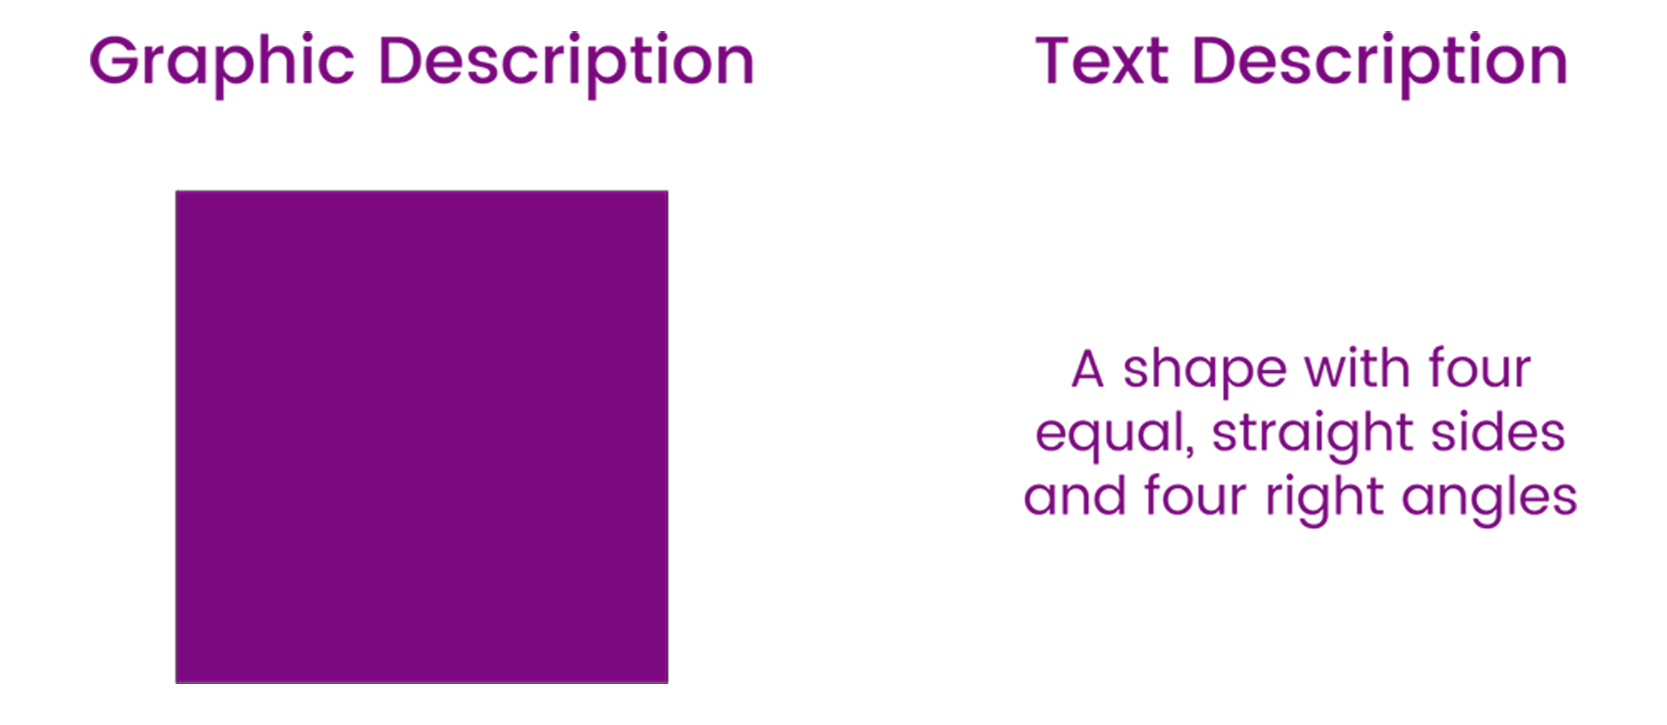 Content writing- Graphics vs Text